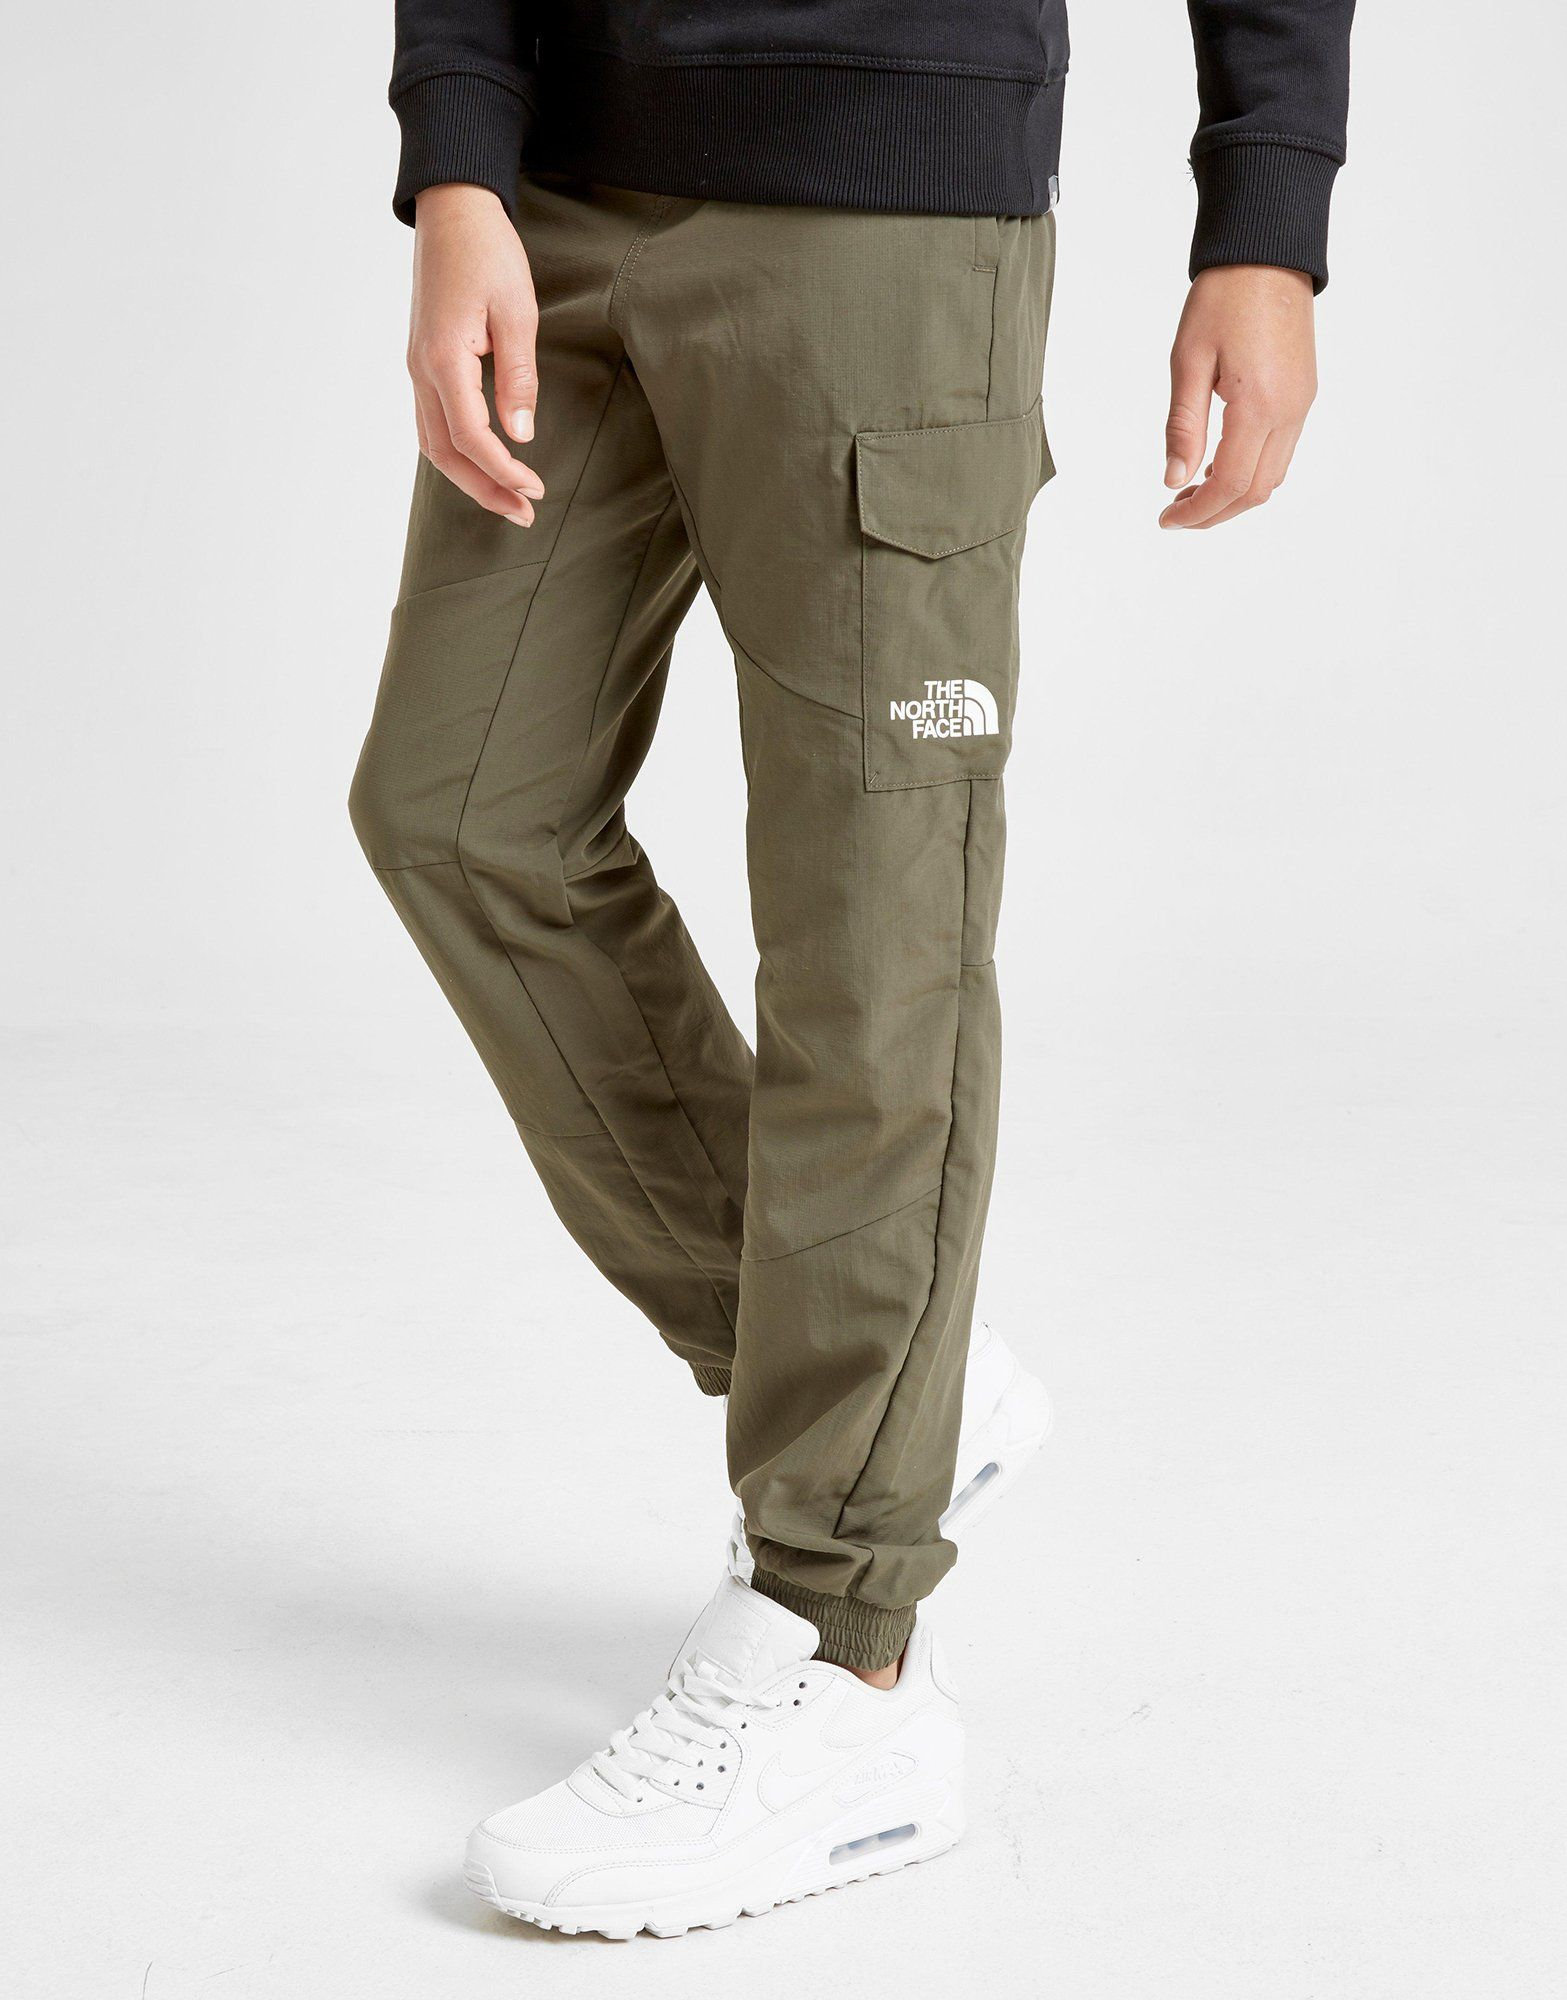 outlet on sale most desirable fashion look good shoes sale The North Face Woven Cargo Pants Junior | JD Sports Ireland